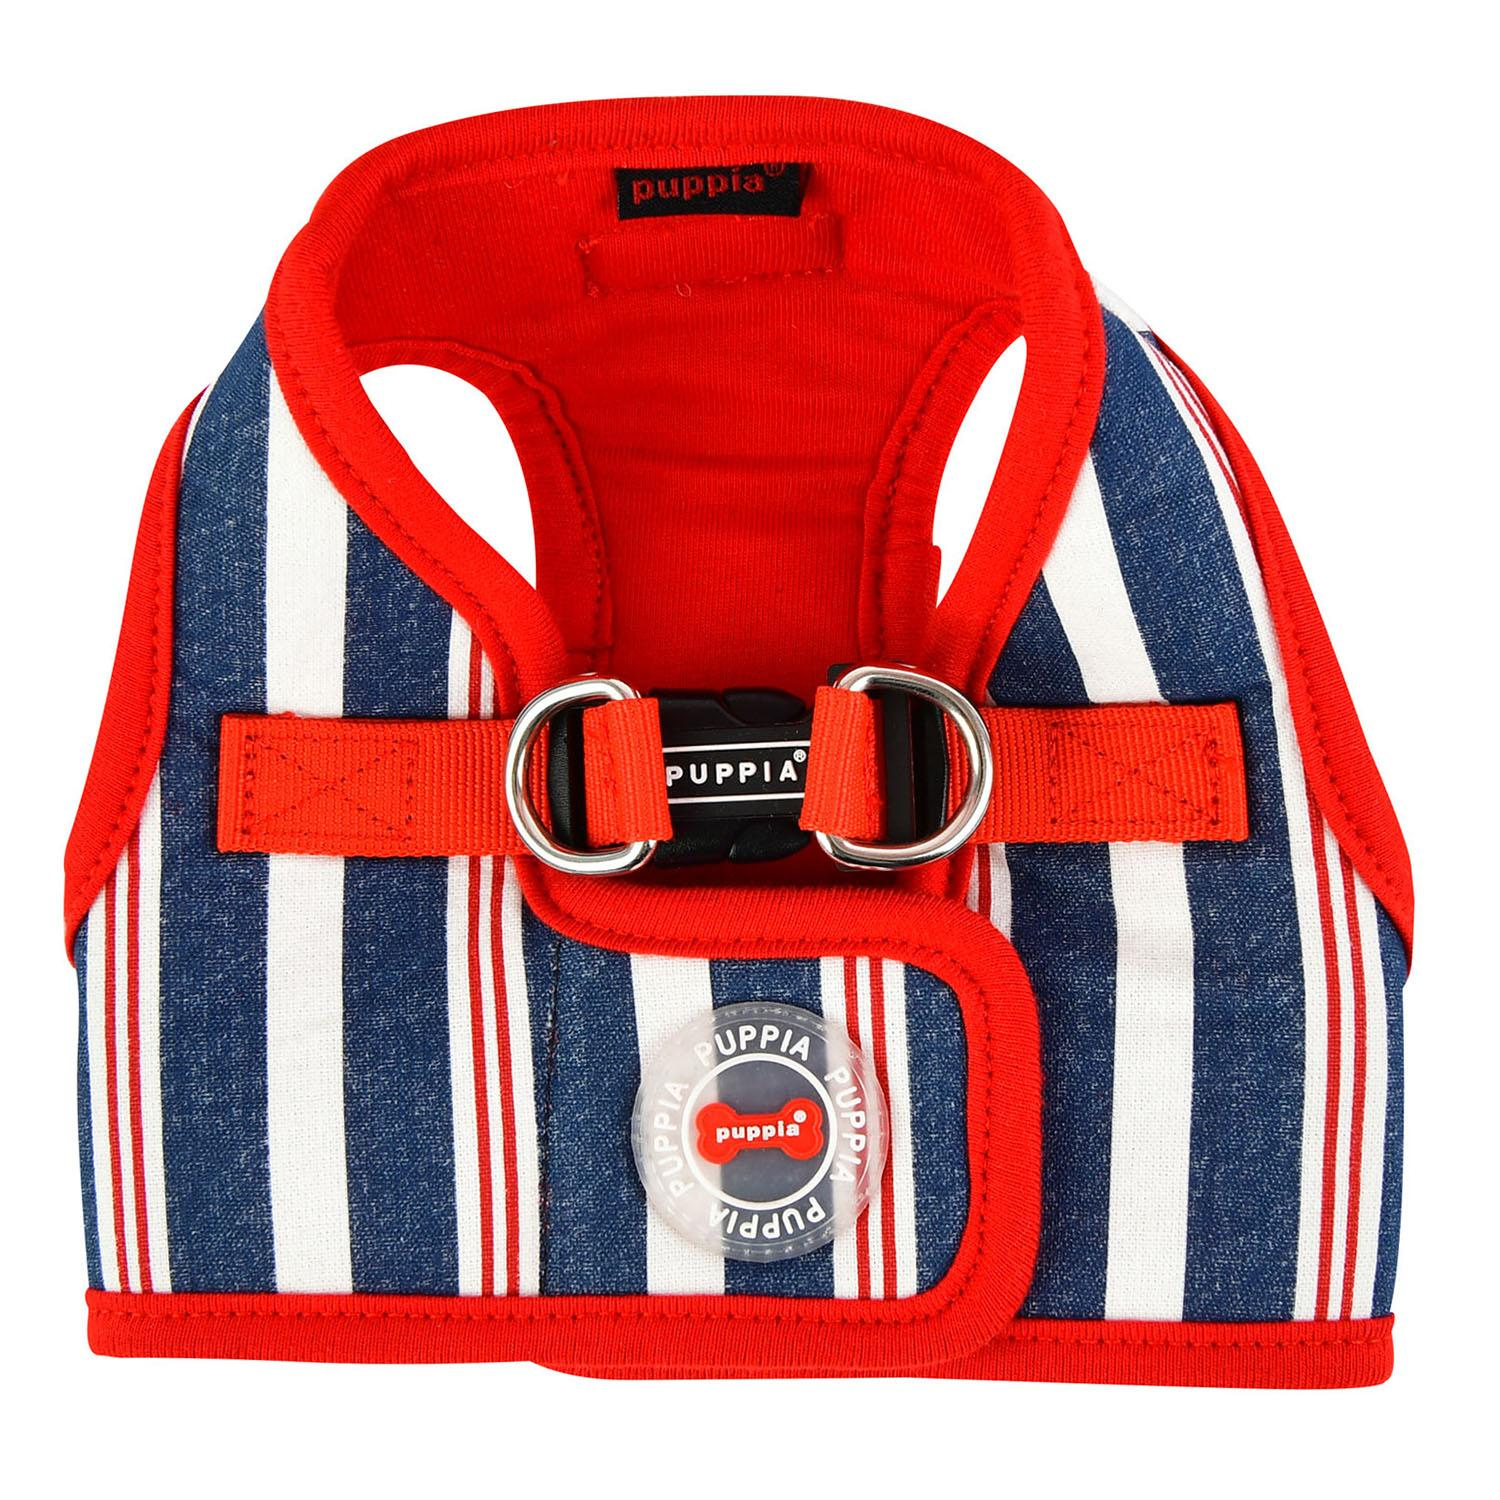 Zorion Striped Vest Dog Harness by Puppia - Red